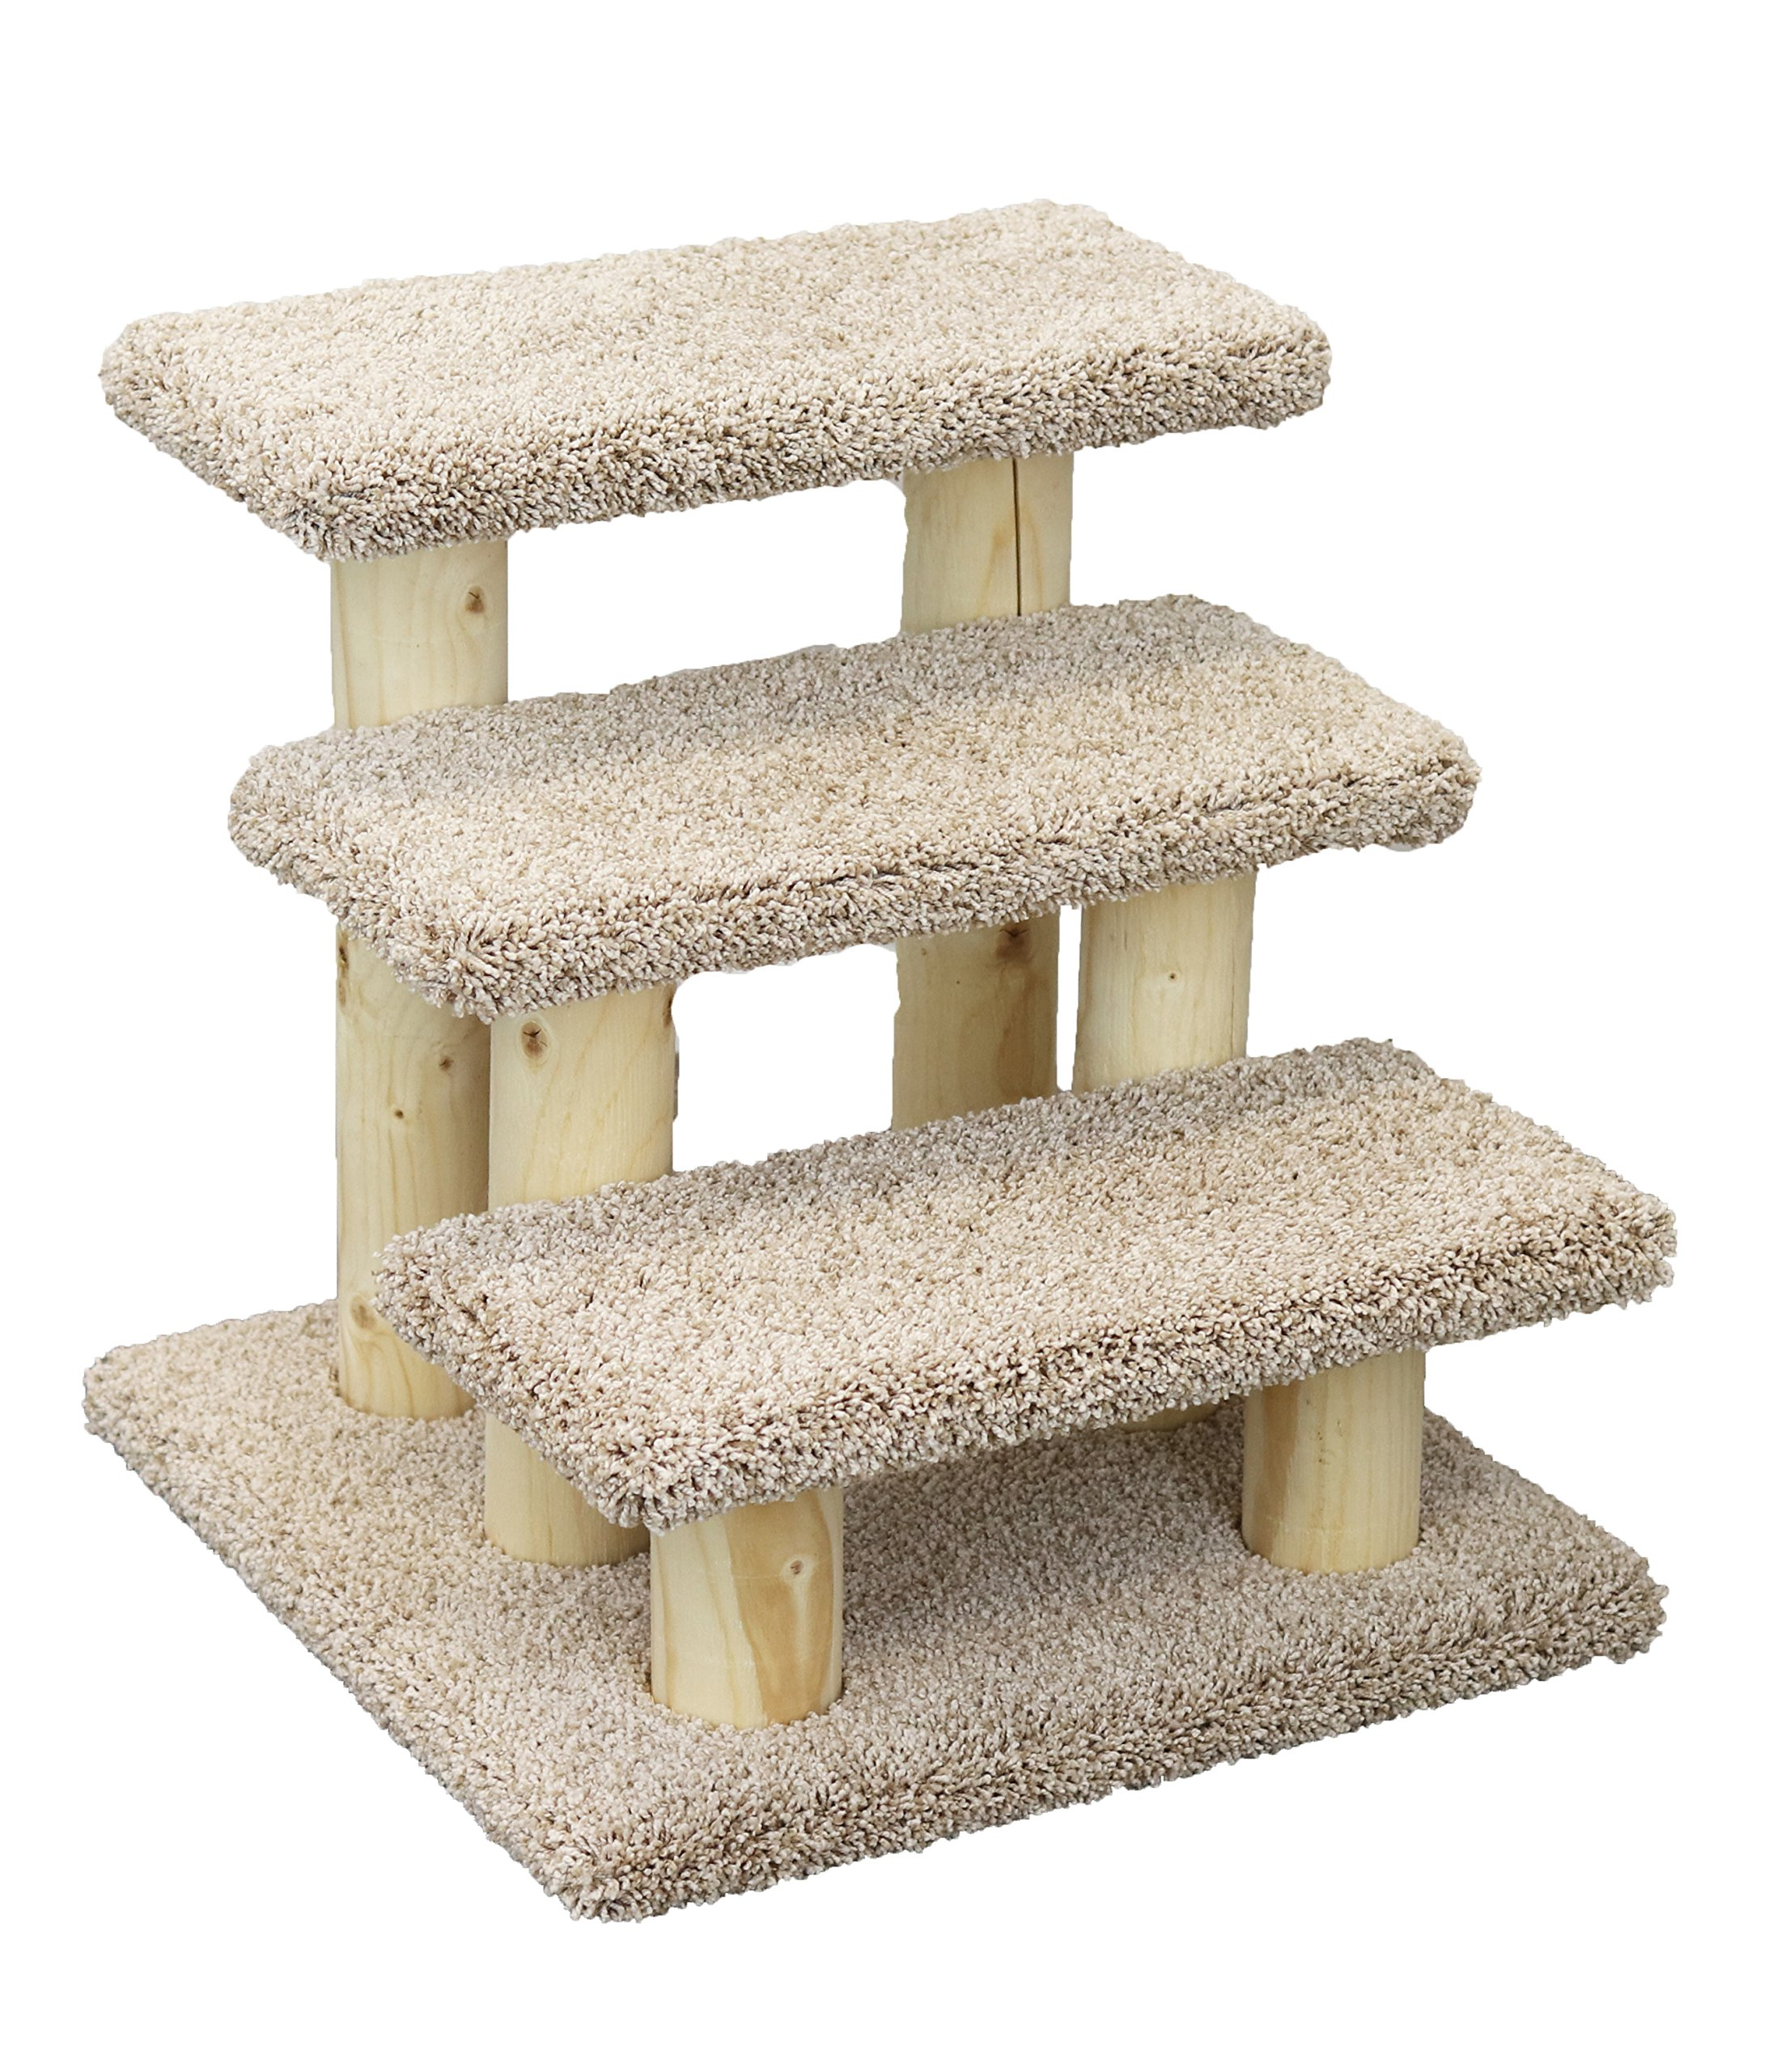 New Cat Condos 110223 Pet Stairs, Large, Beige